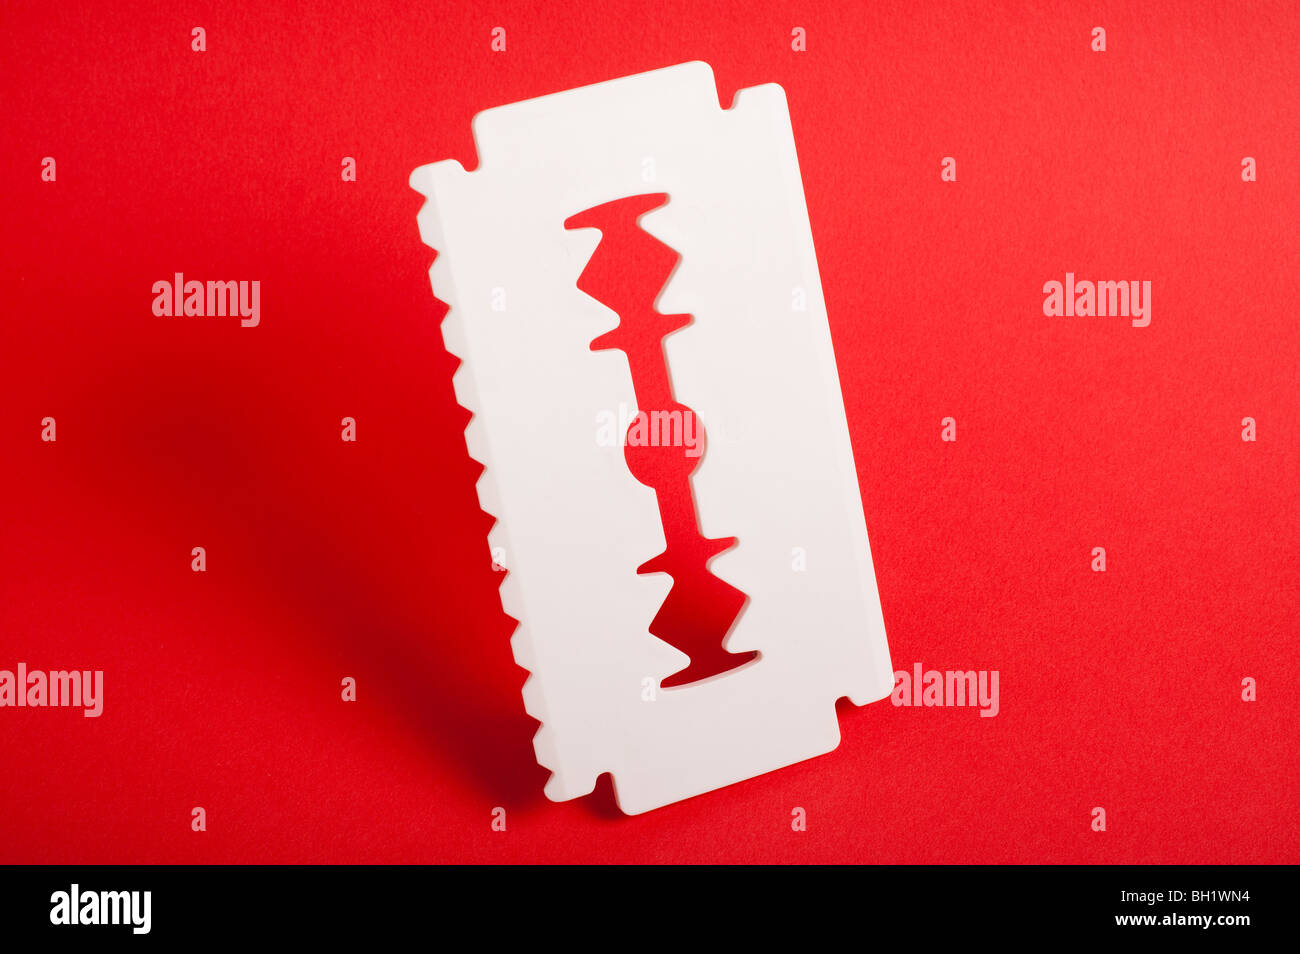 Big white ice scraper shaped as razor blade with smooth shadows. - Stock Image